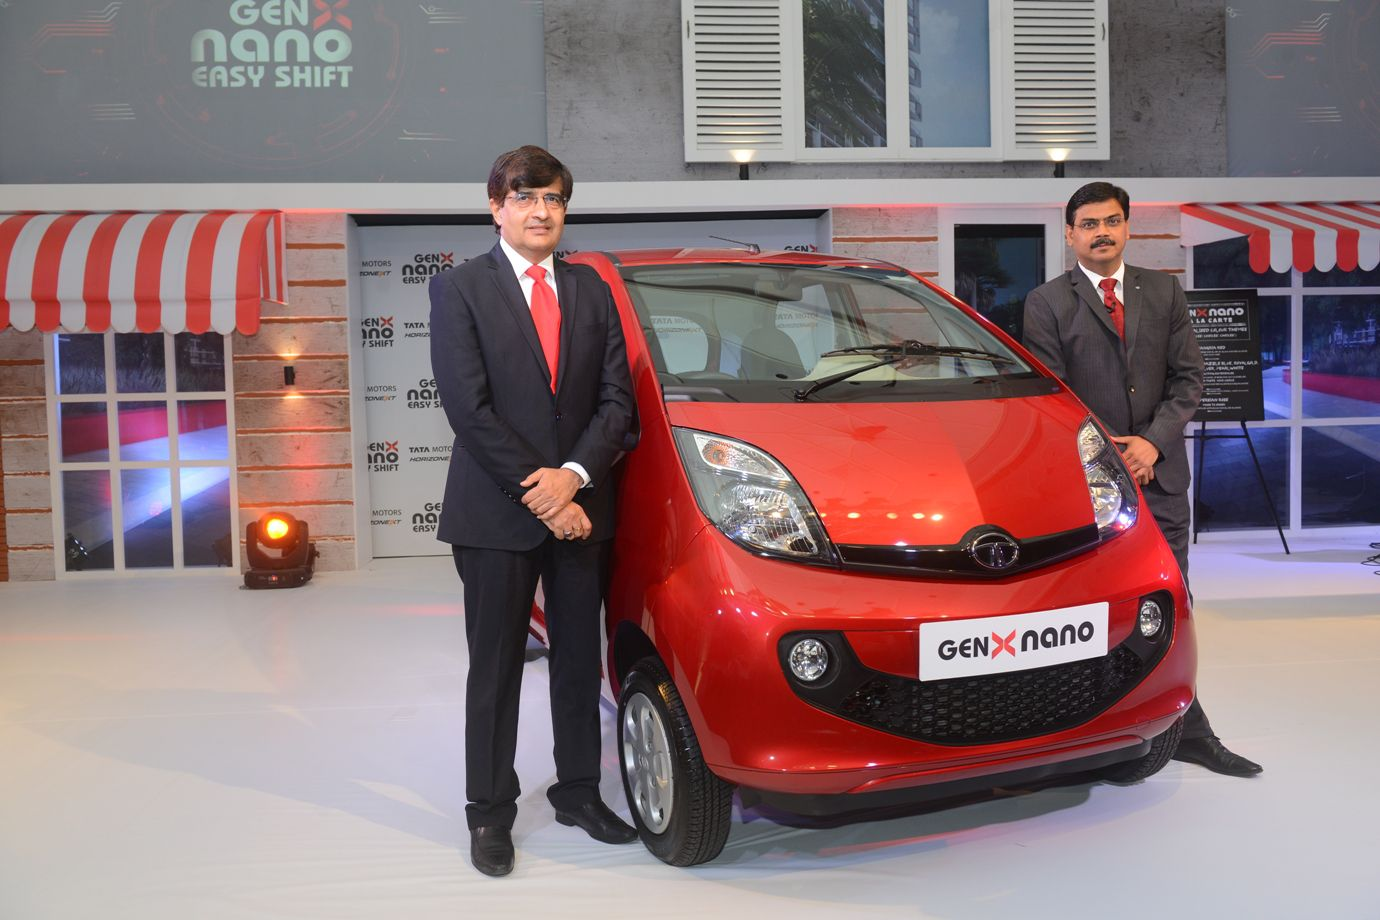 Tata Genx Nano: Tata Motors To Revive Nano Sales With New GenX Nano Range